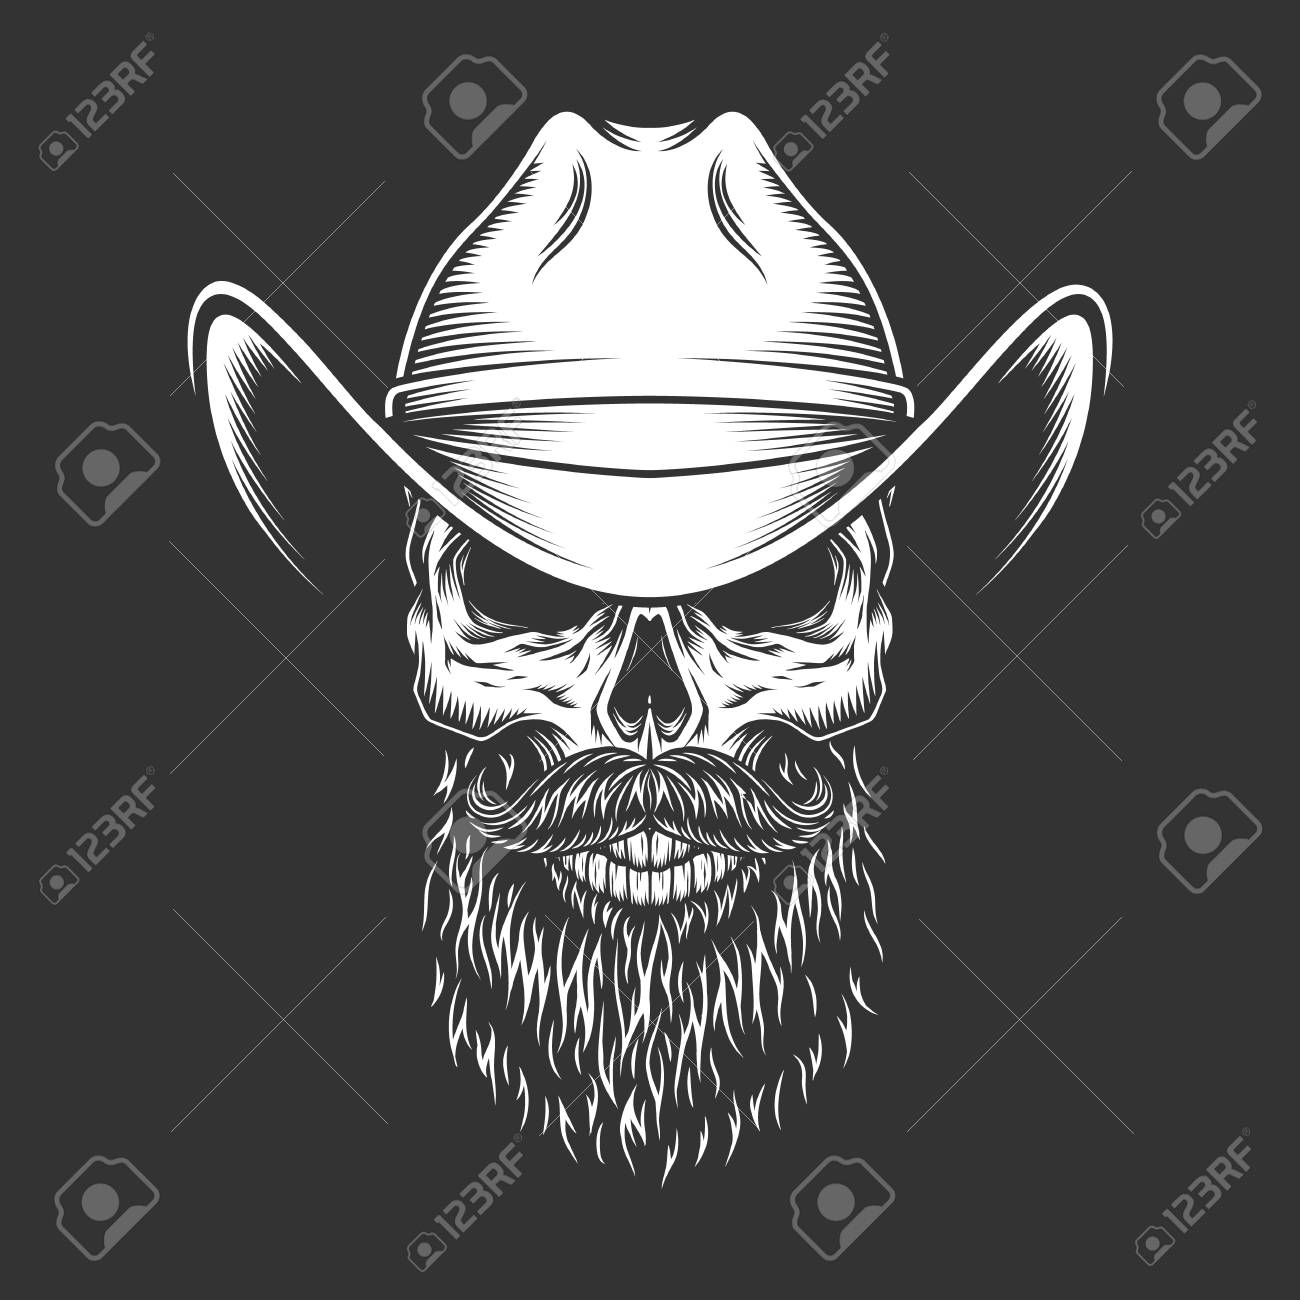 2187ac794a413 Monochrome skull in cowboy hat with beard and mustache in vintage style  isolated vector illustration Stock